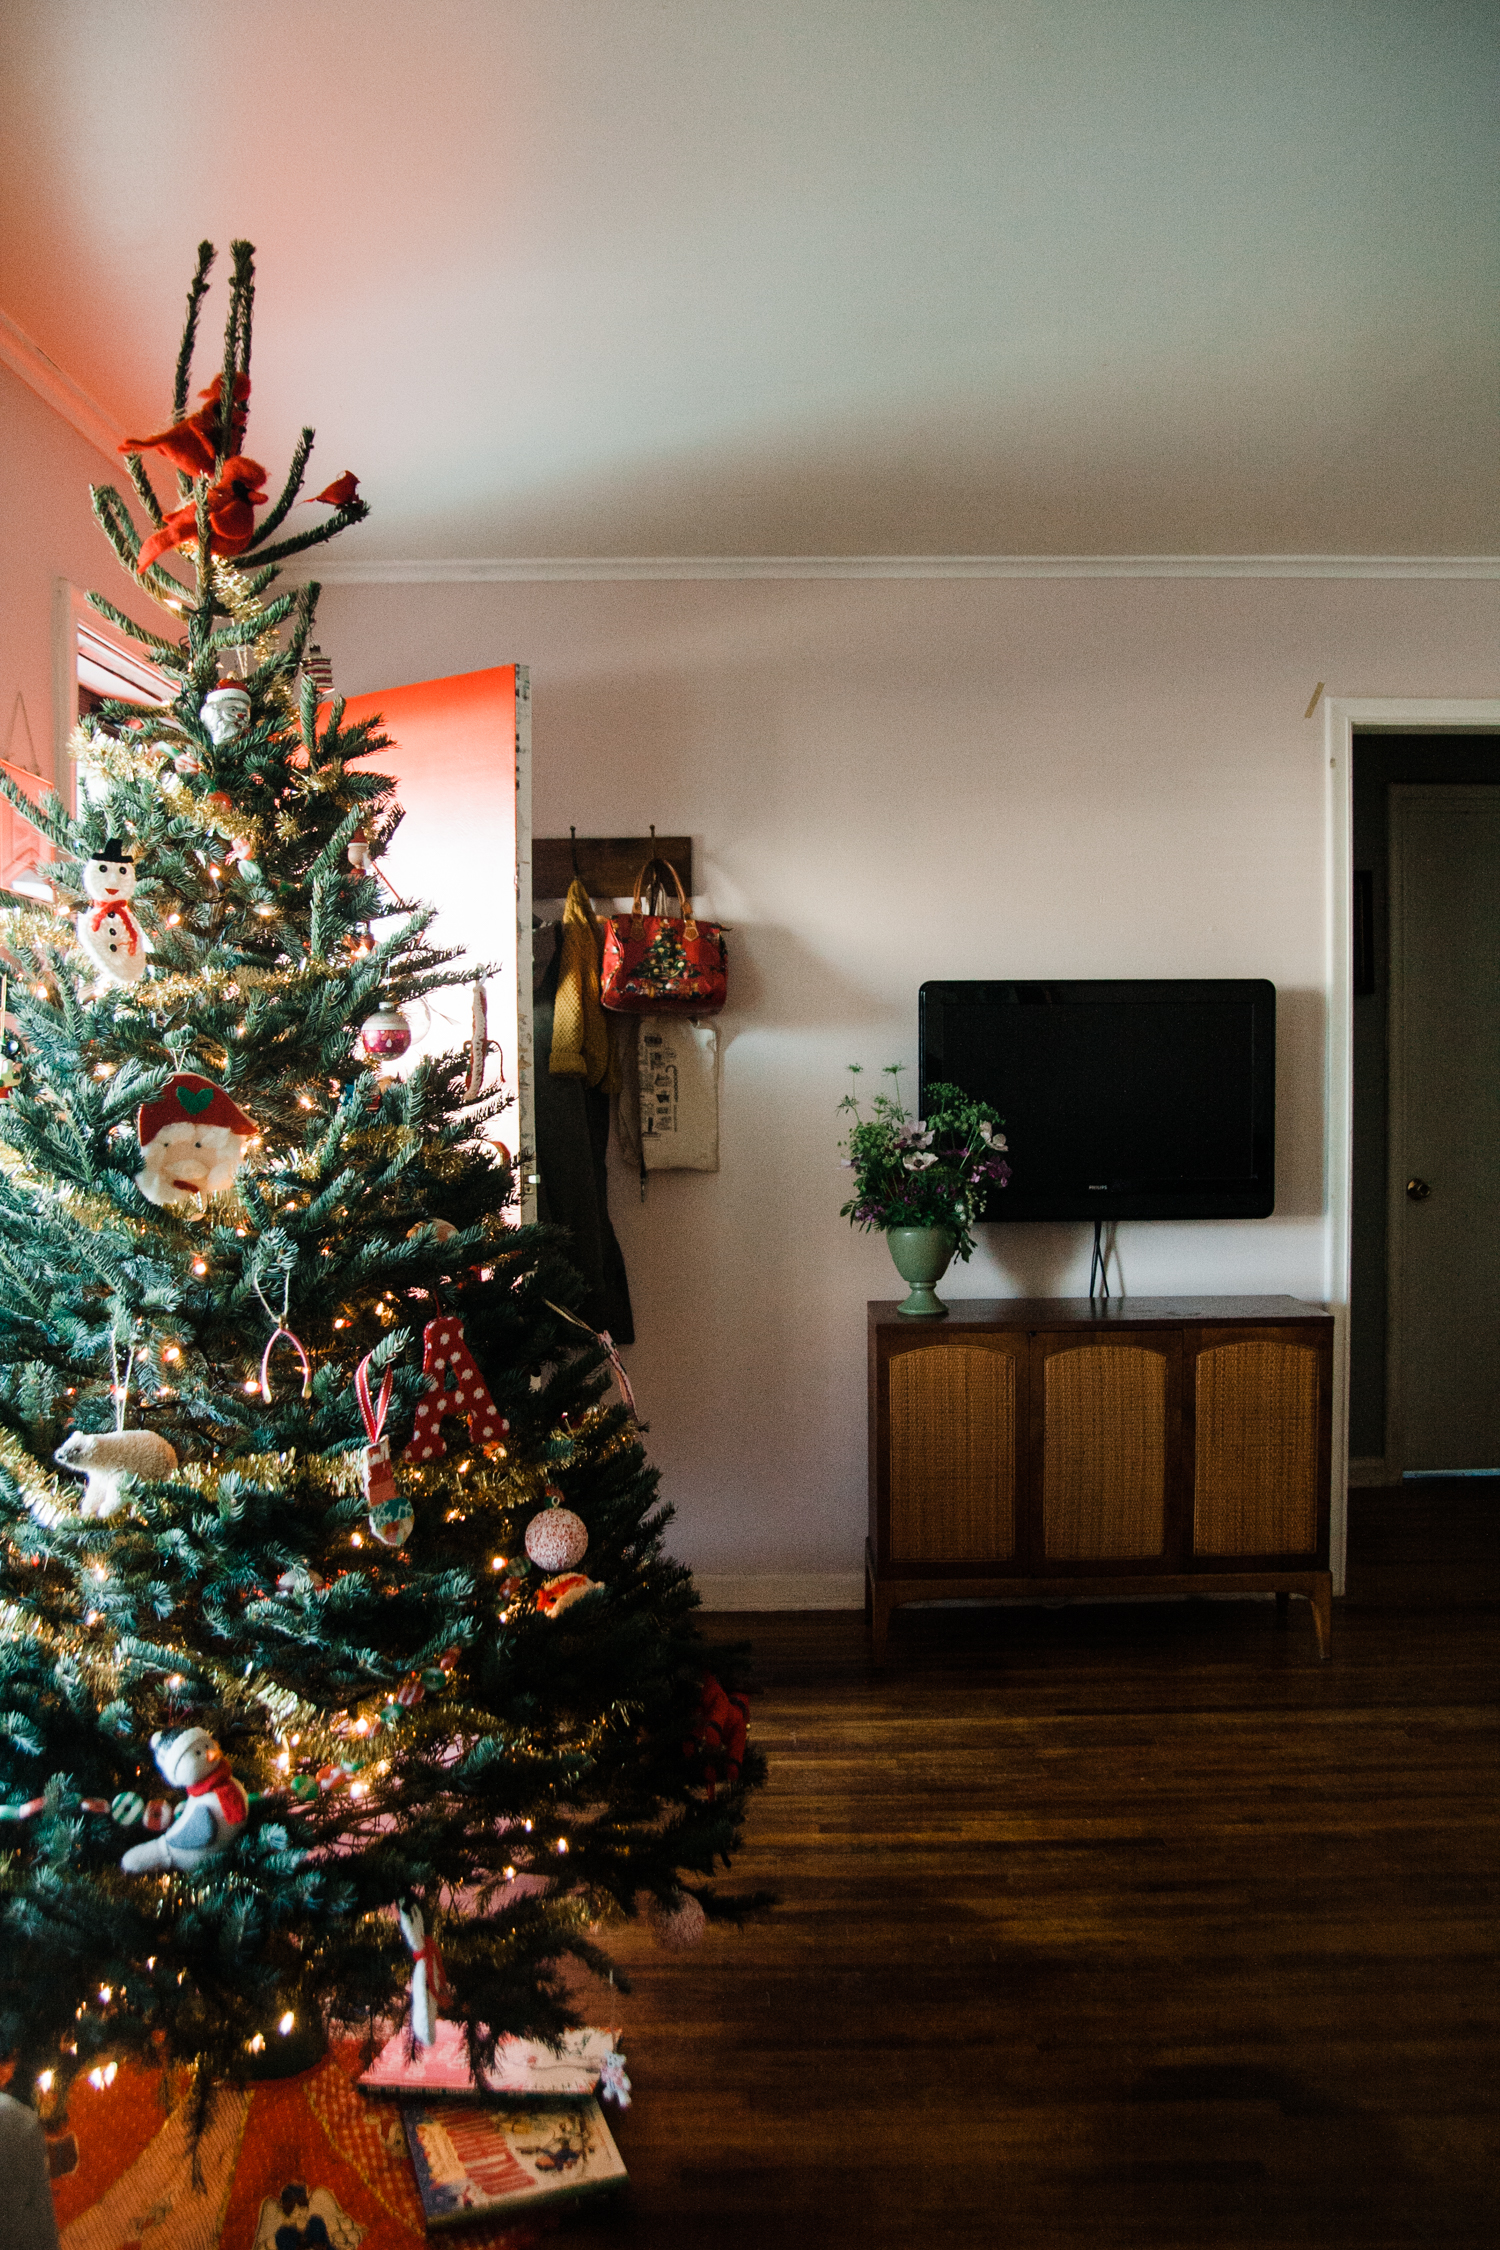 daly holiday home tour-8.jpg